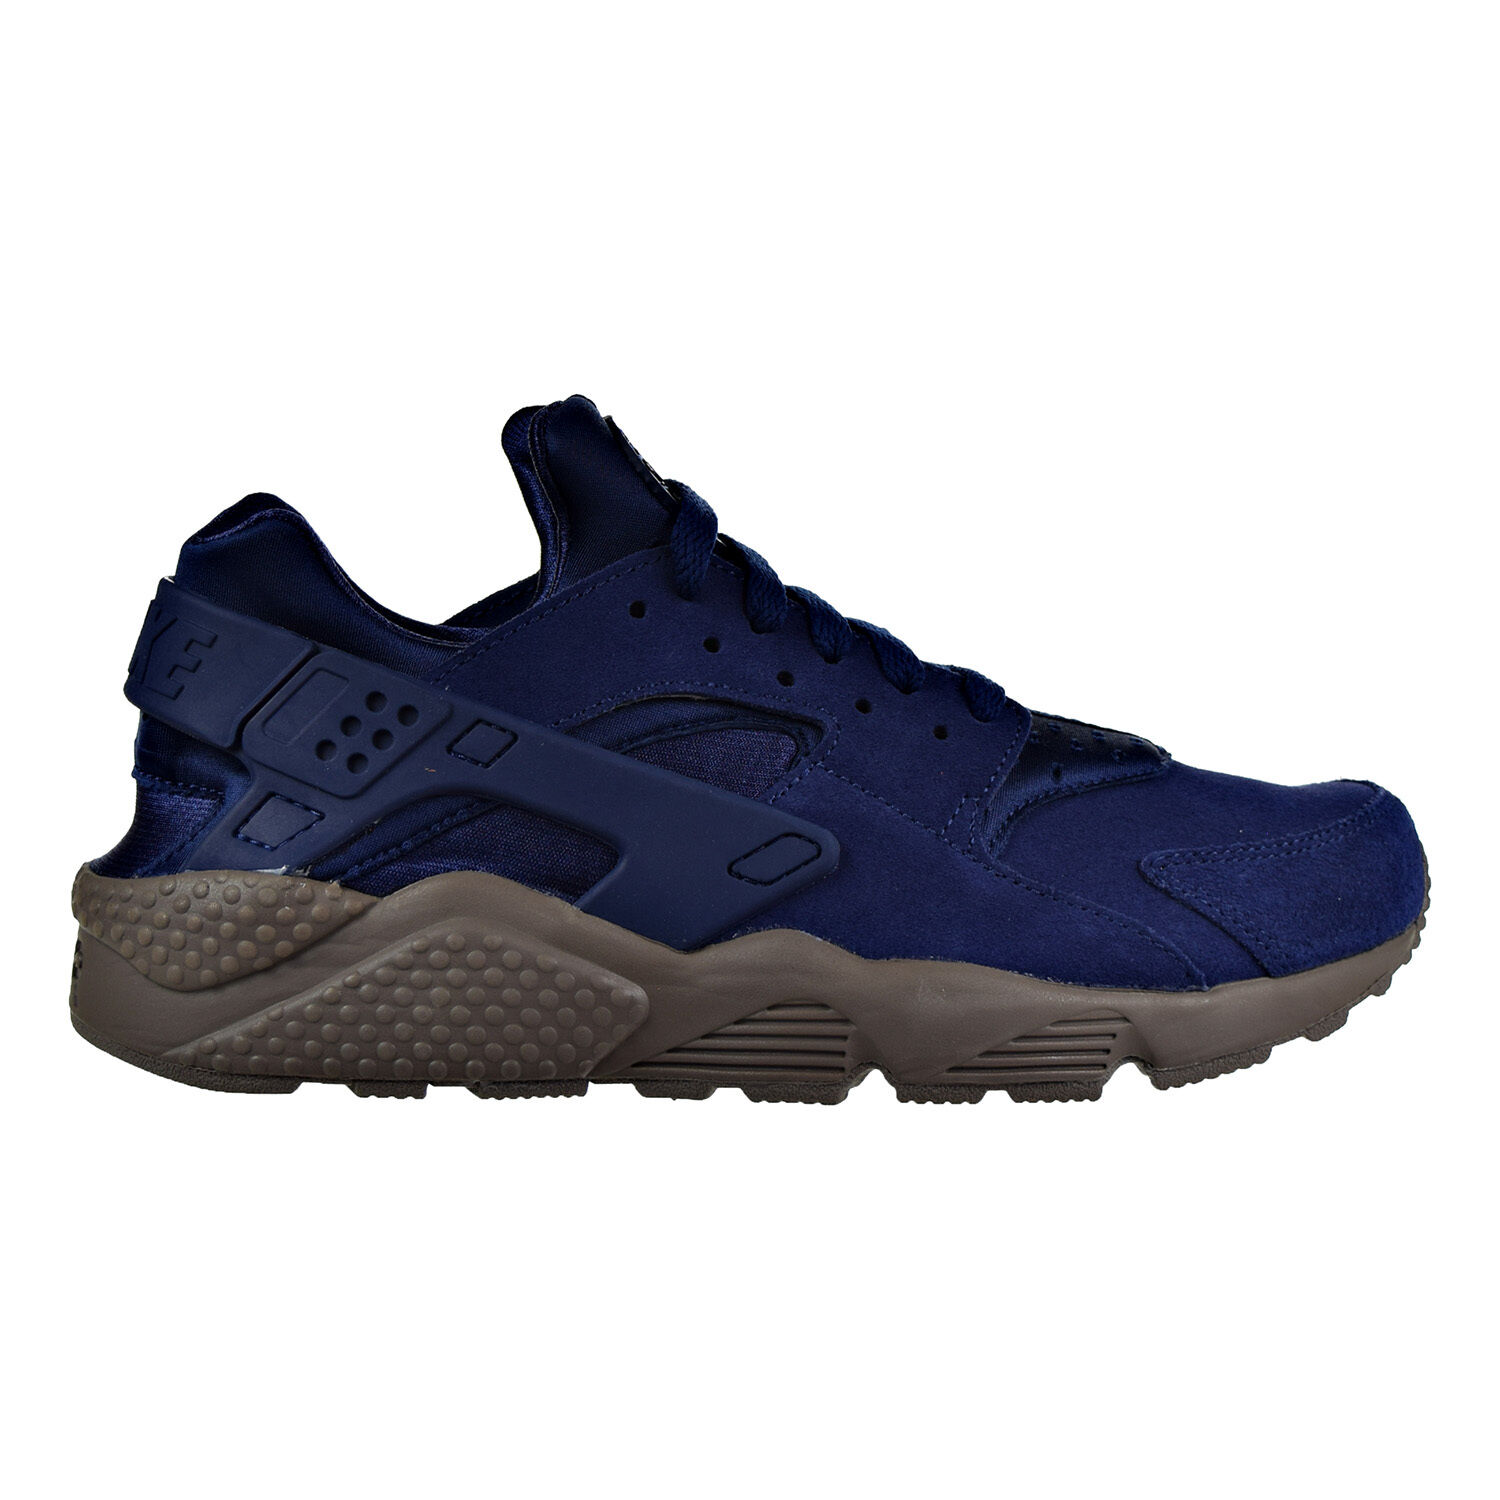 Nike Air Huarache Run SE Men's Shoes Binary Blue/Binary Blue 852628-400 The most popular shoes for men and women